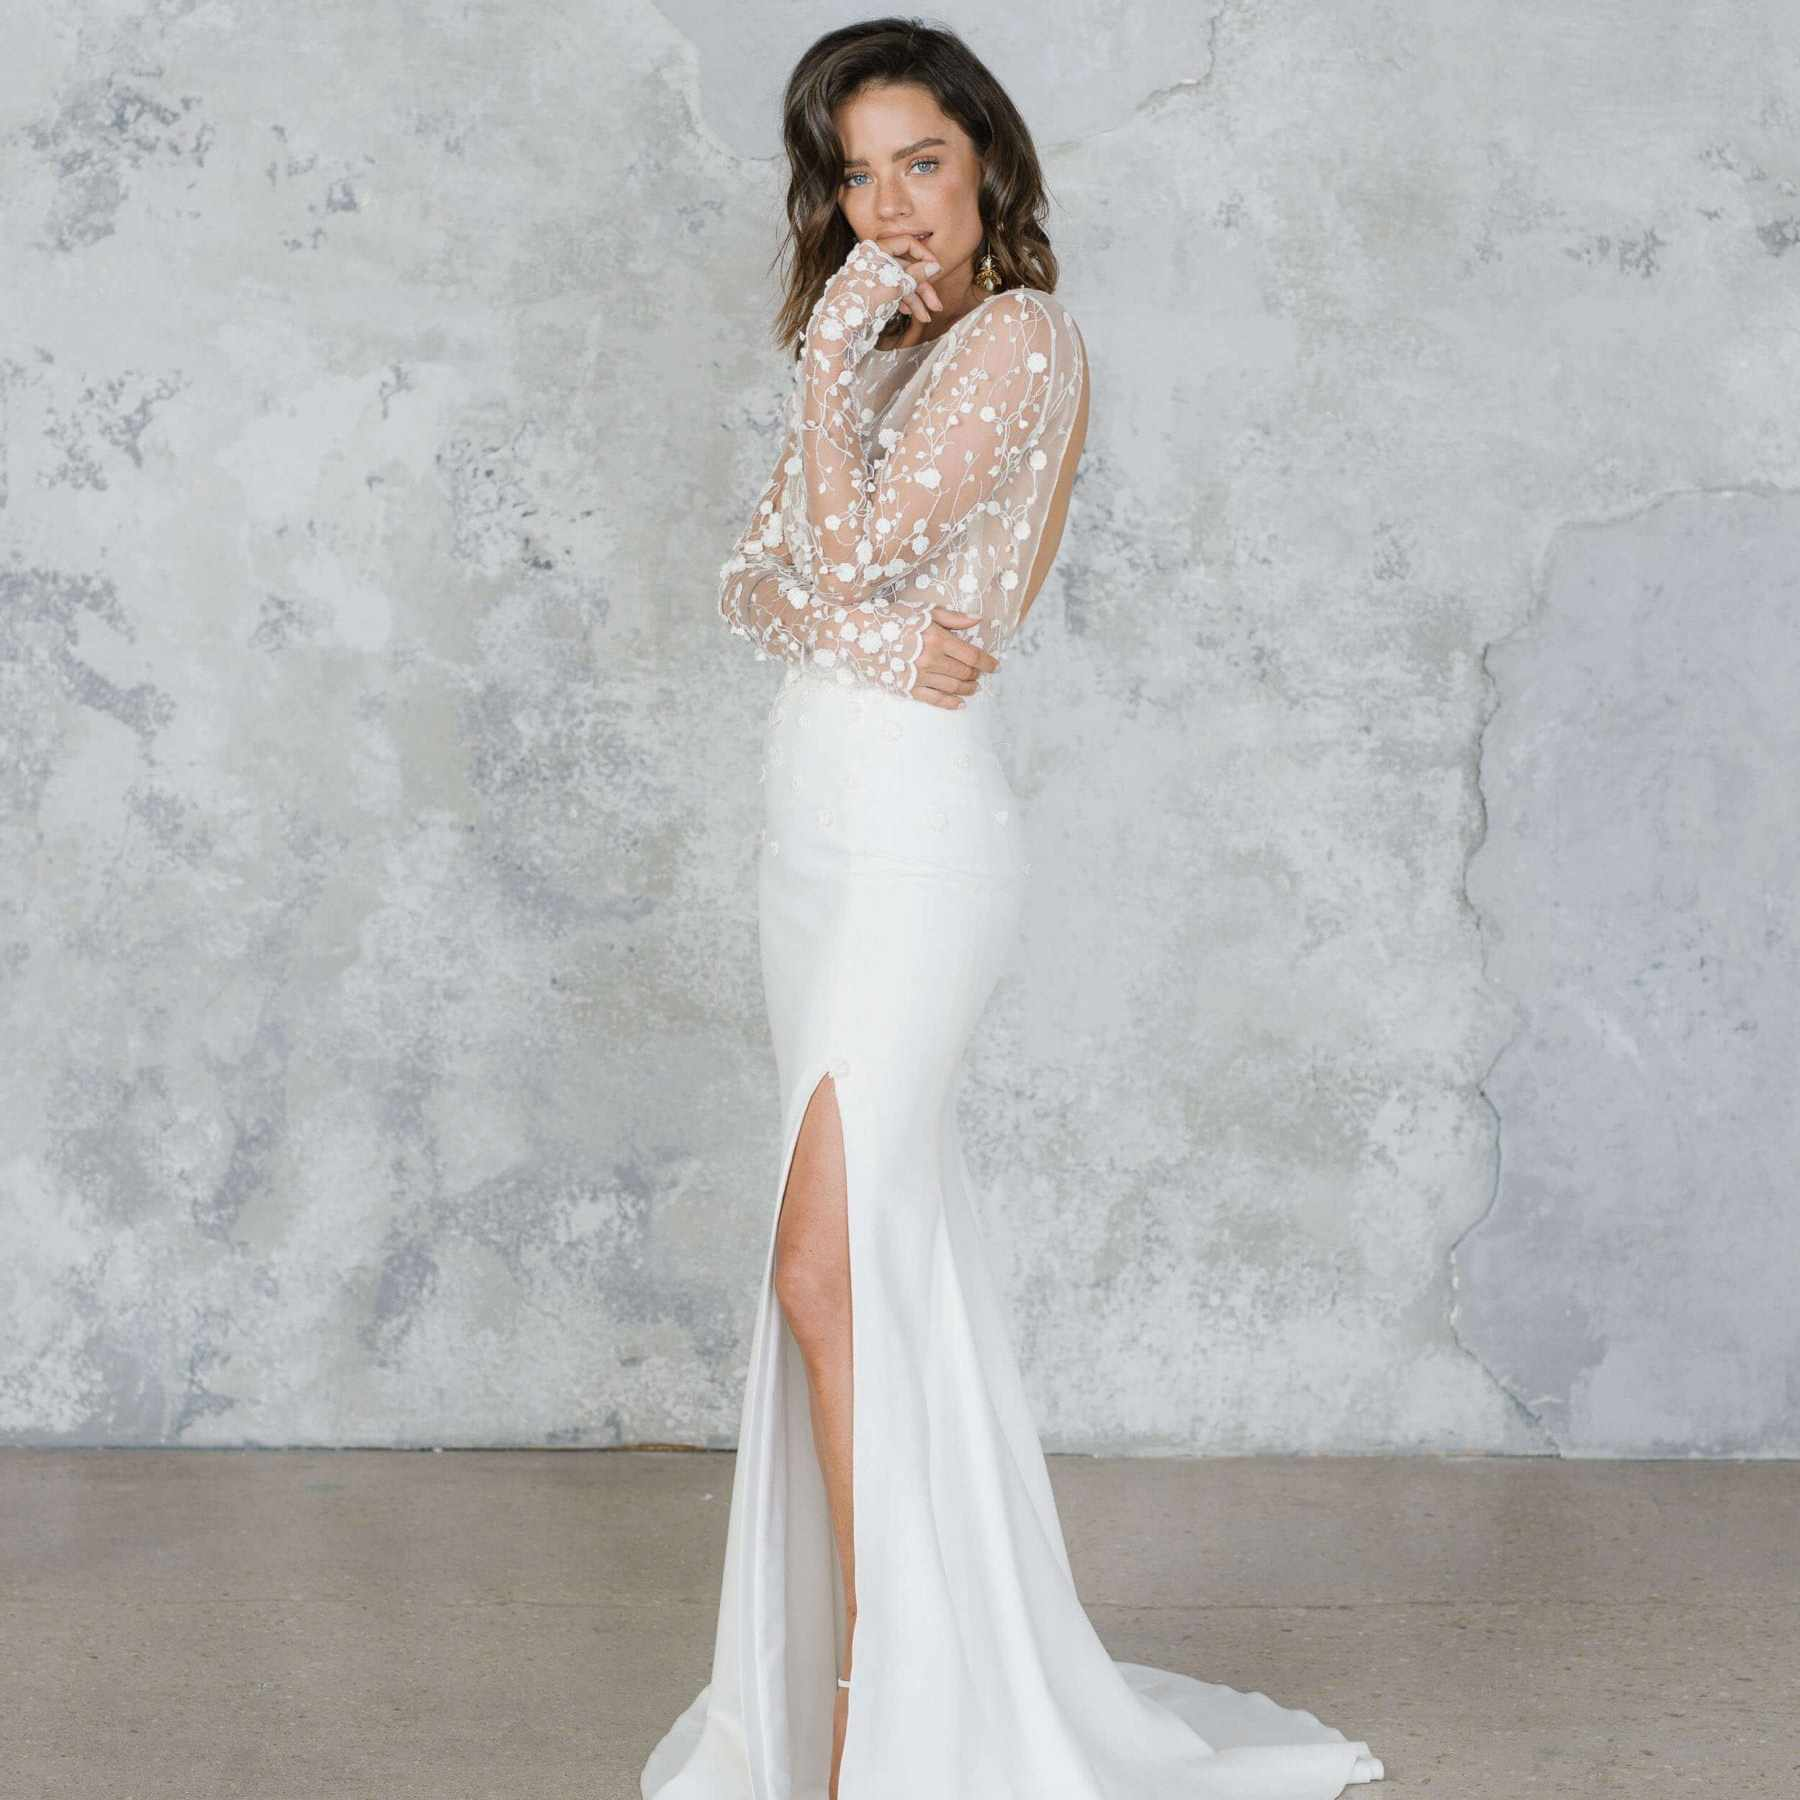 Model in floral embroidered illusion bodice with long sleeves wedding gown